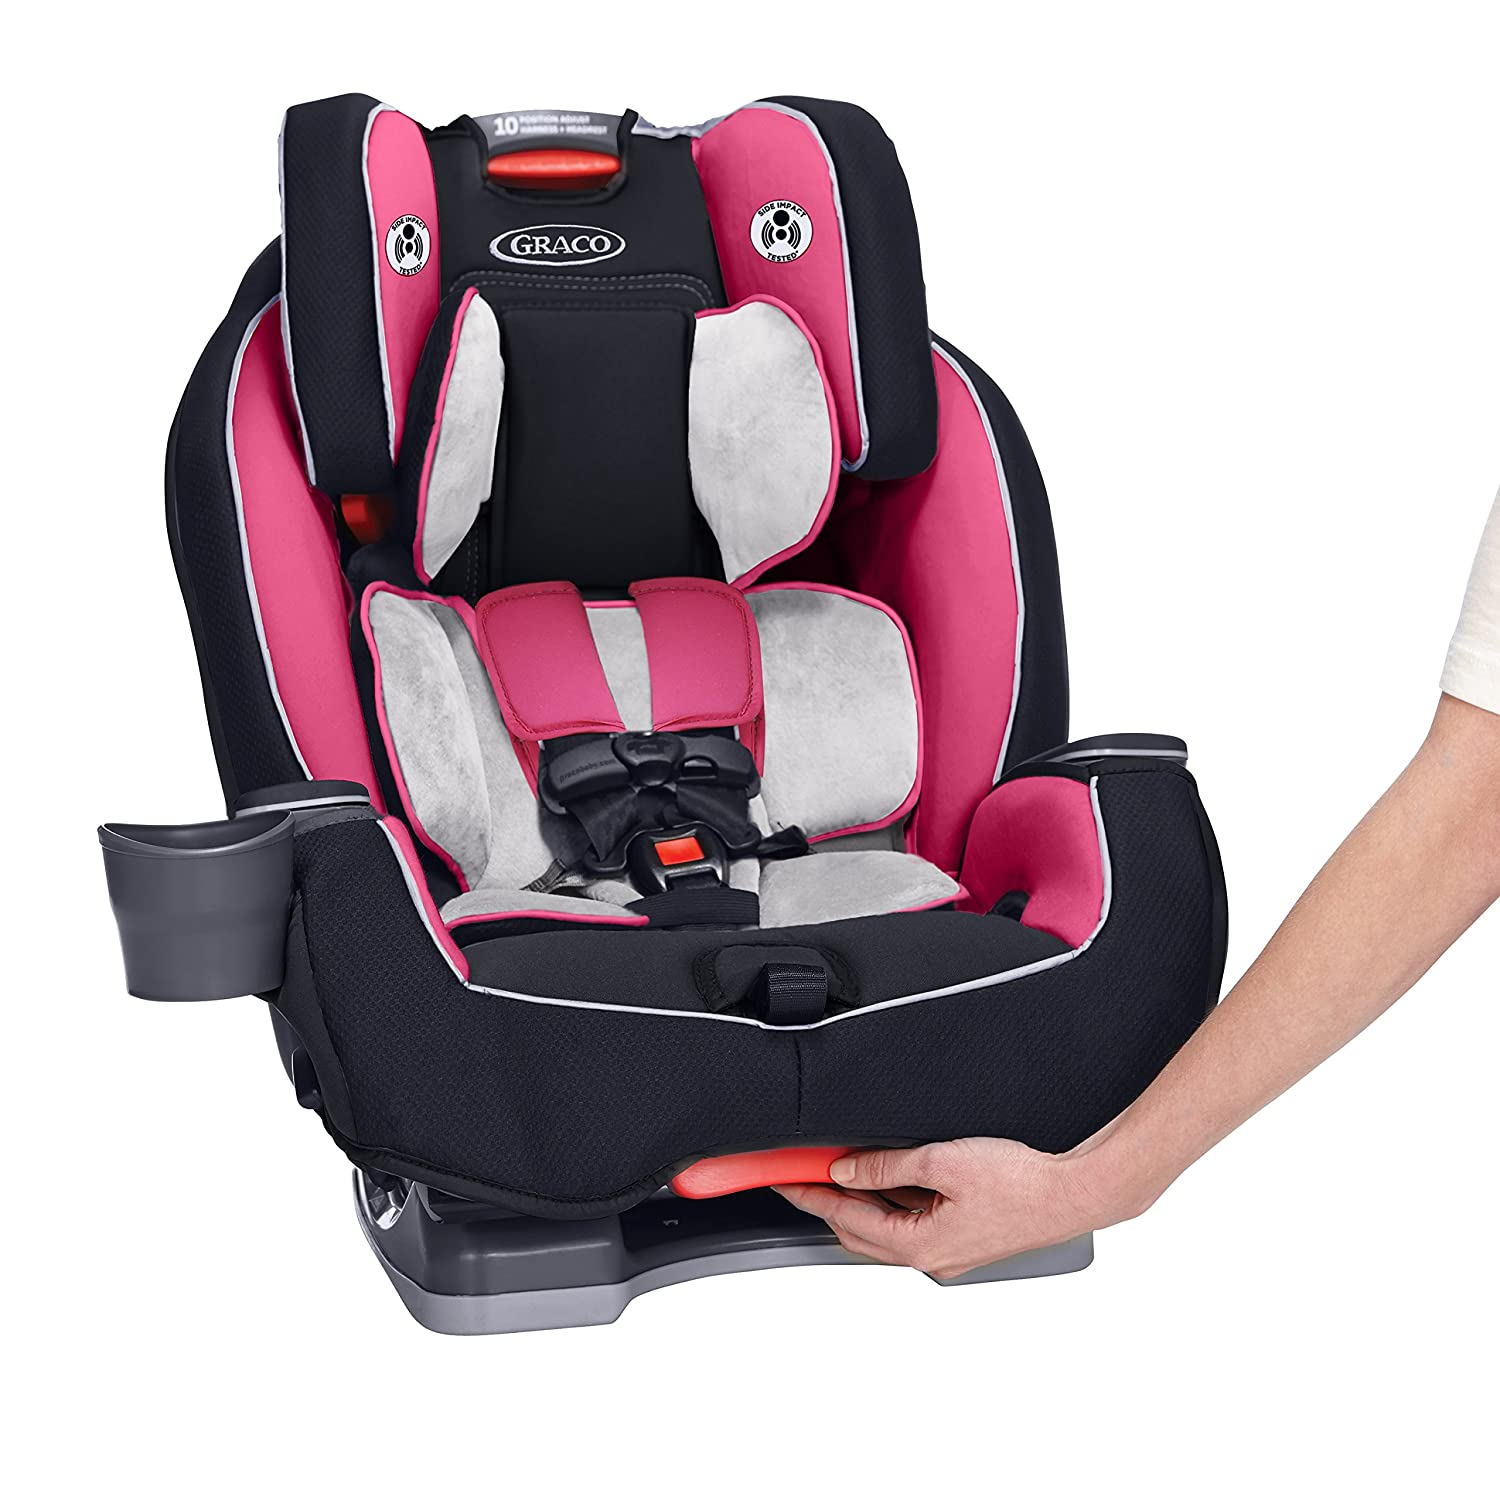 Parts for car seats likewise graco replacement parts for car - Amazon Com Graco Milestone All In 1 Convertible Car Seat Ayla Baby